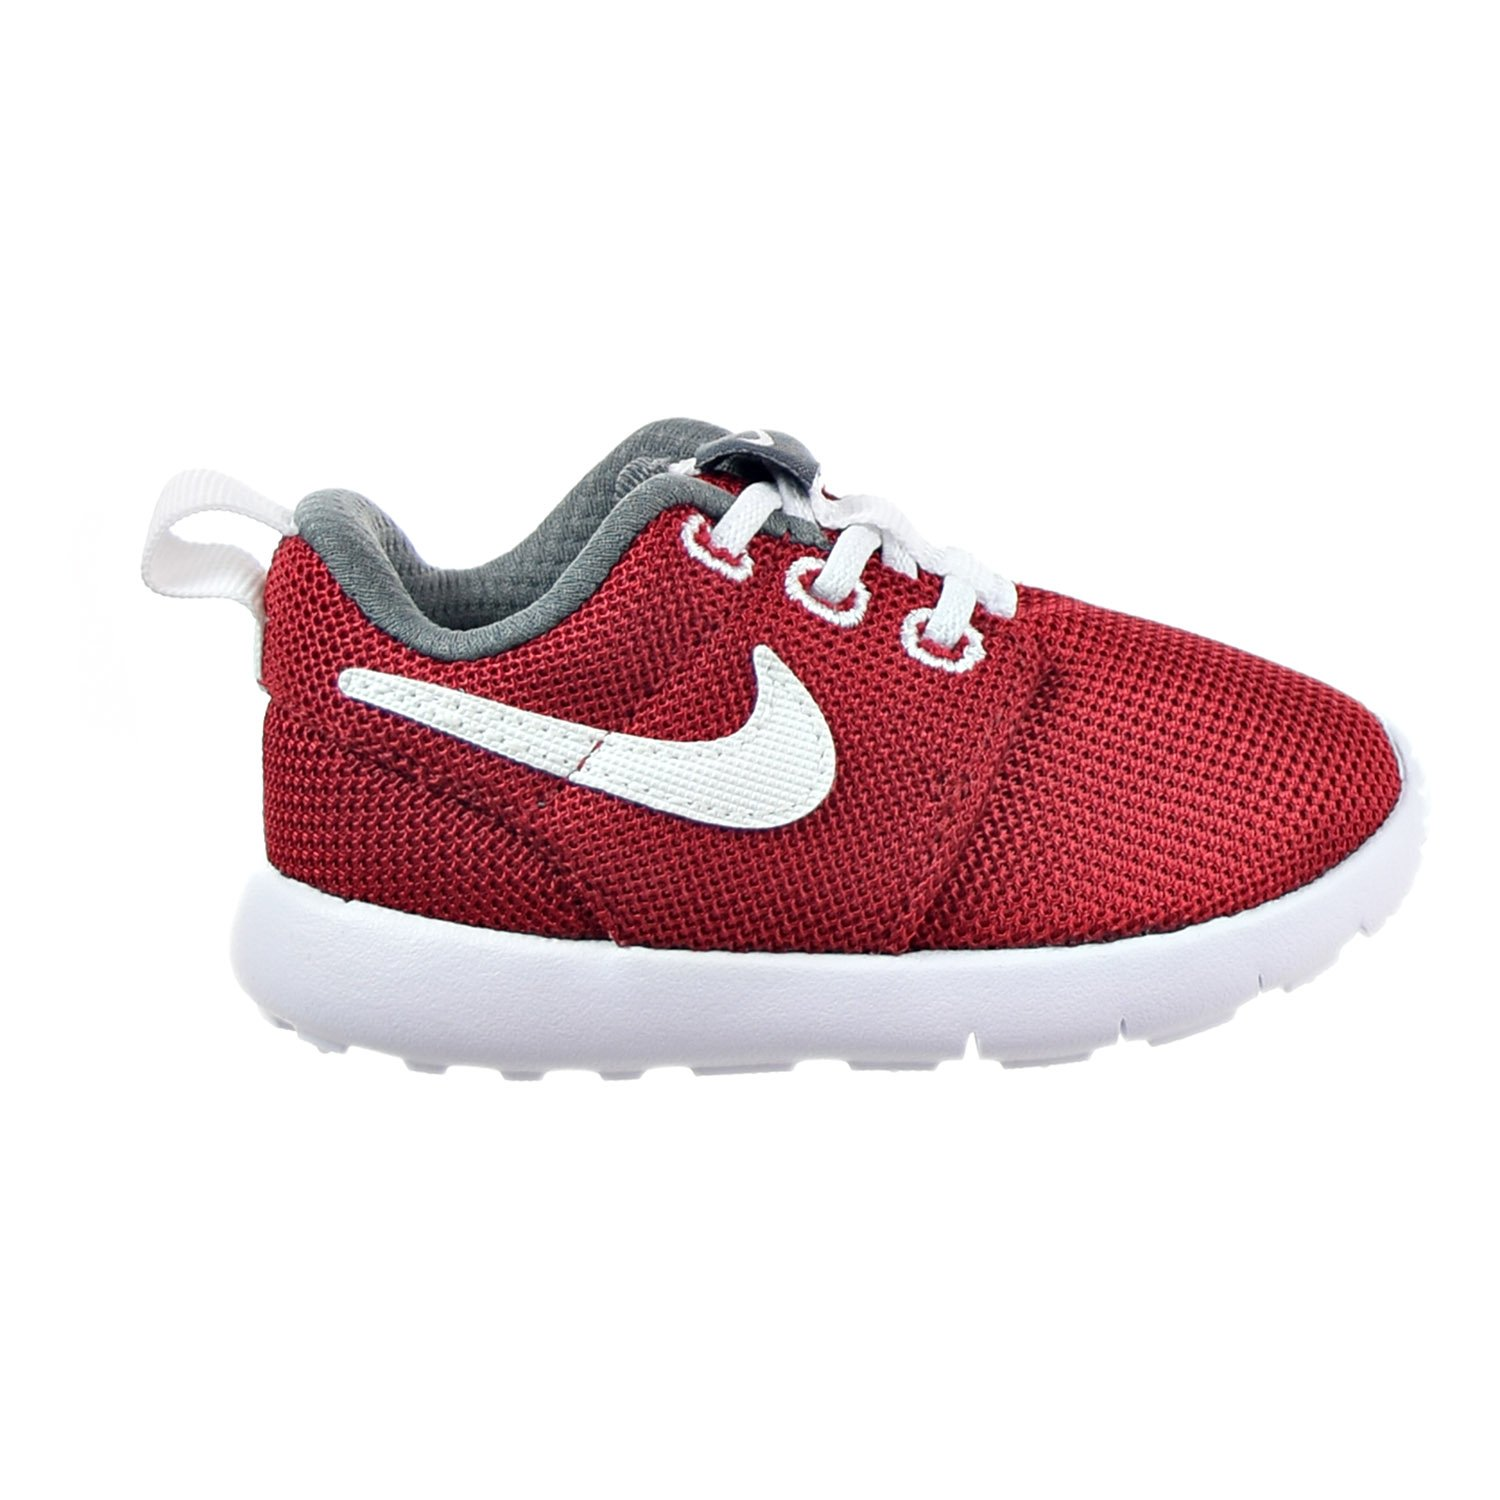 11996351e56c4 Amazon.com  Nike  749430-603  Roshe ONE (TDV) Infants Sneakers NIKEGYM RED  White Dark Grey Rouge GYMM  Shoes